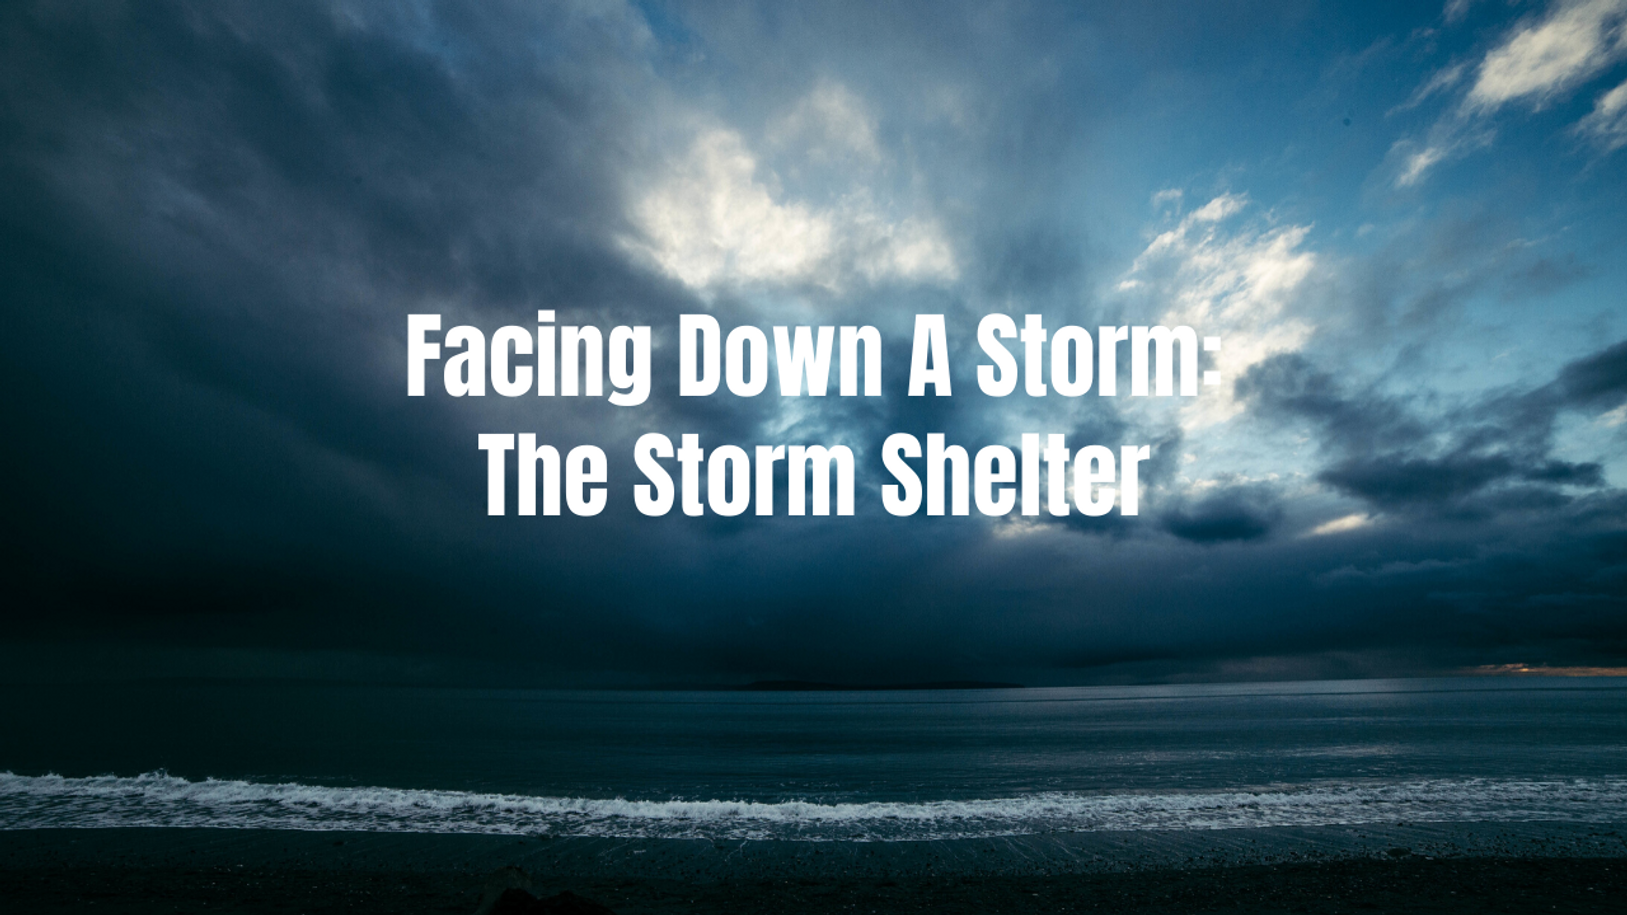 Facing Down a Storm: The Storm Shelter